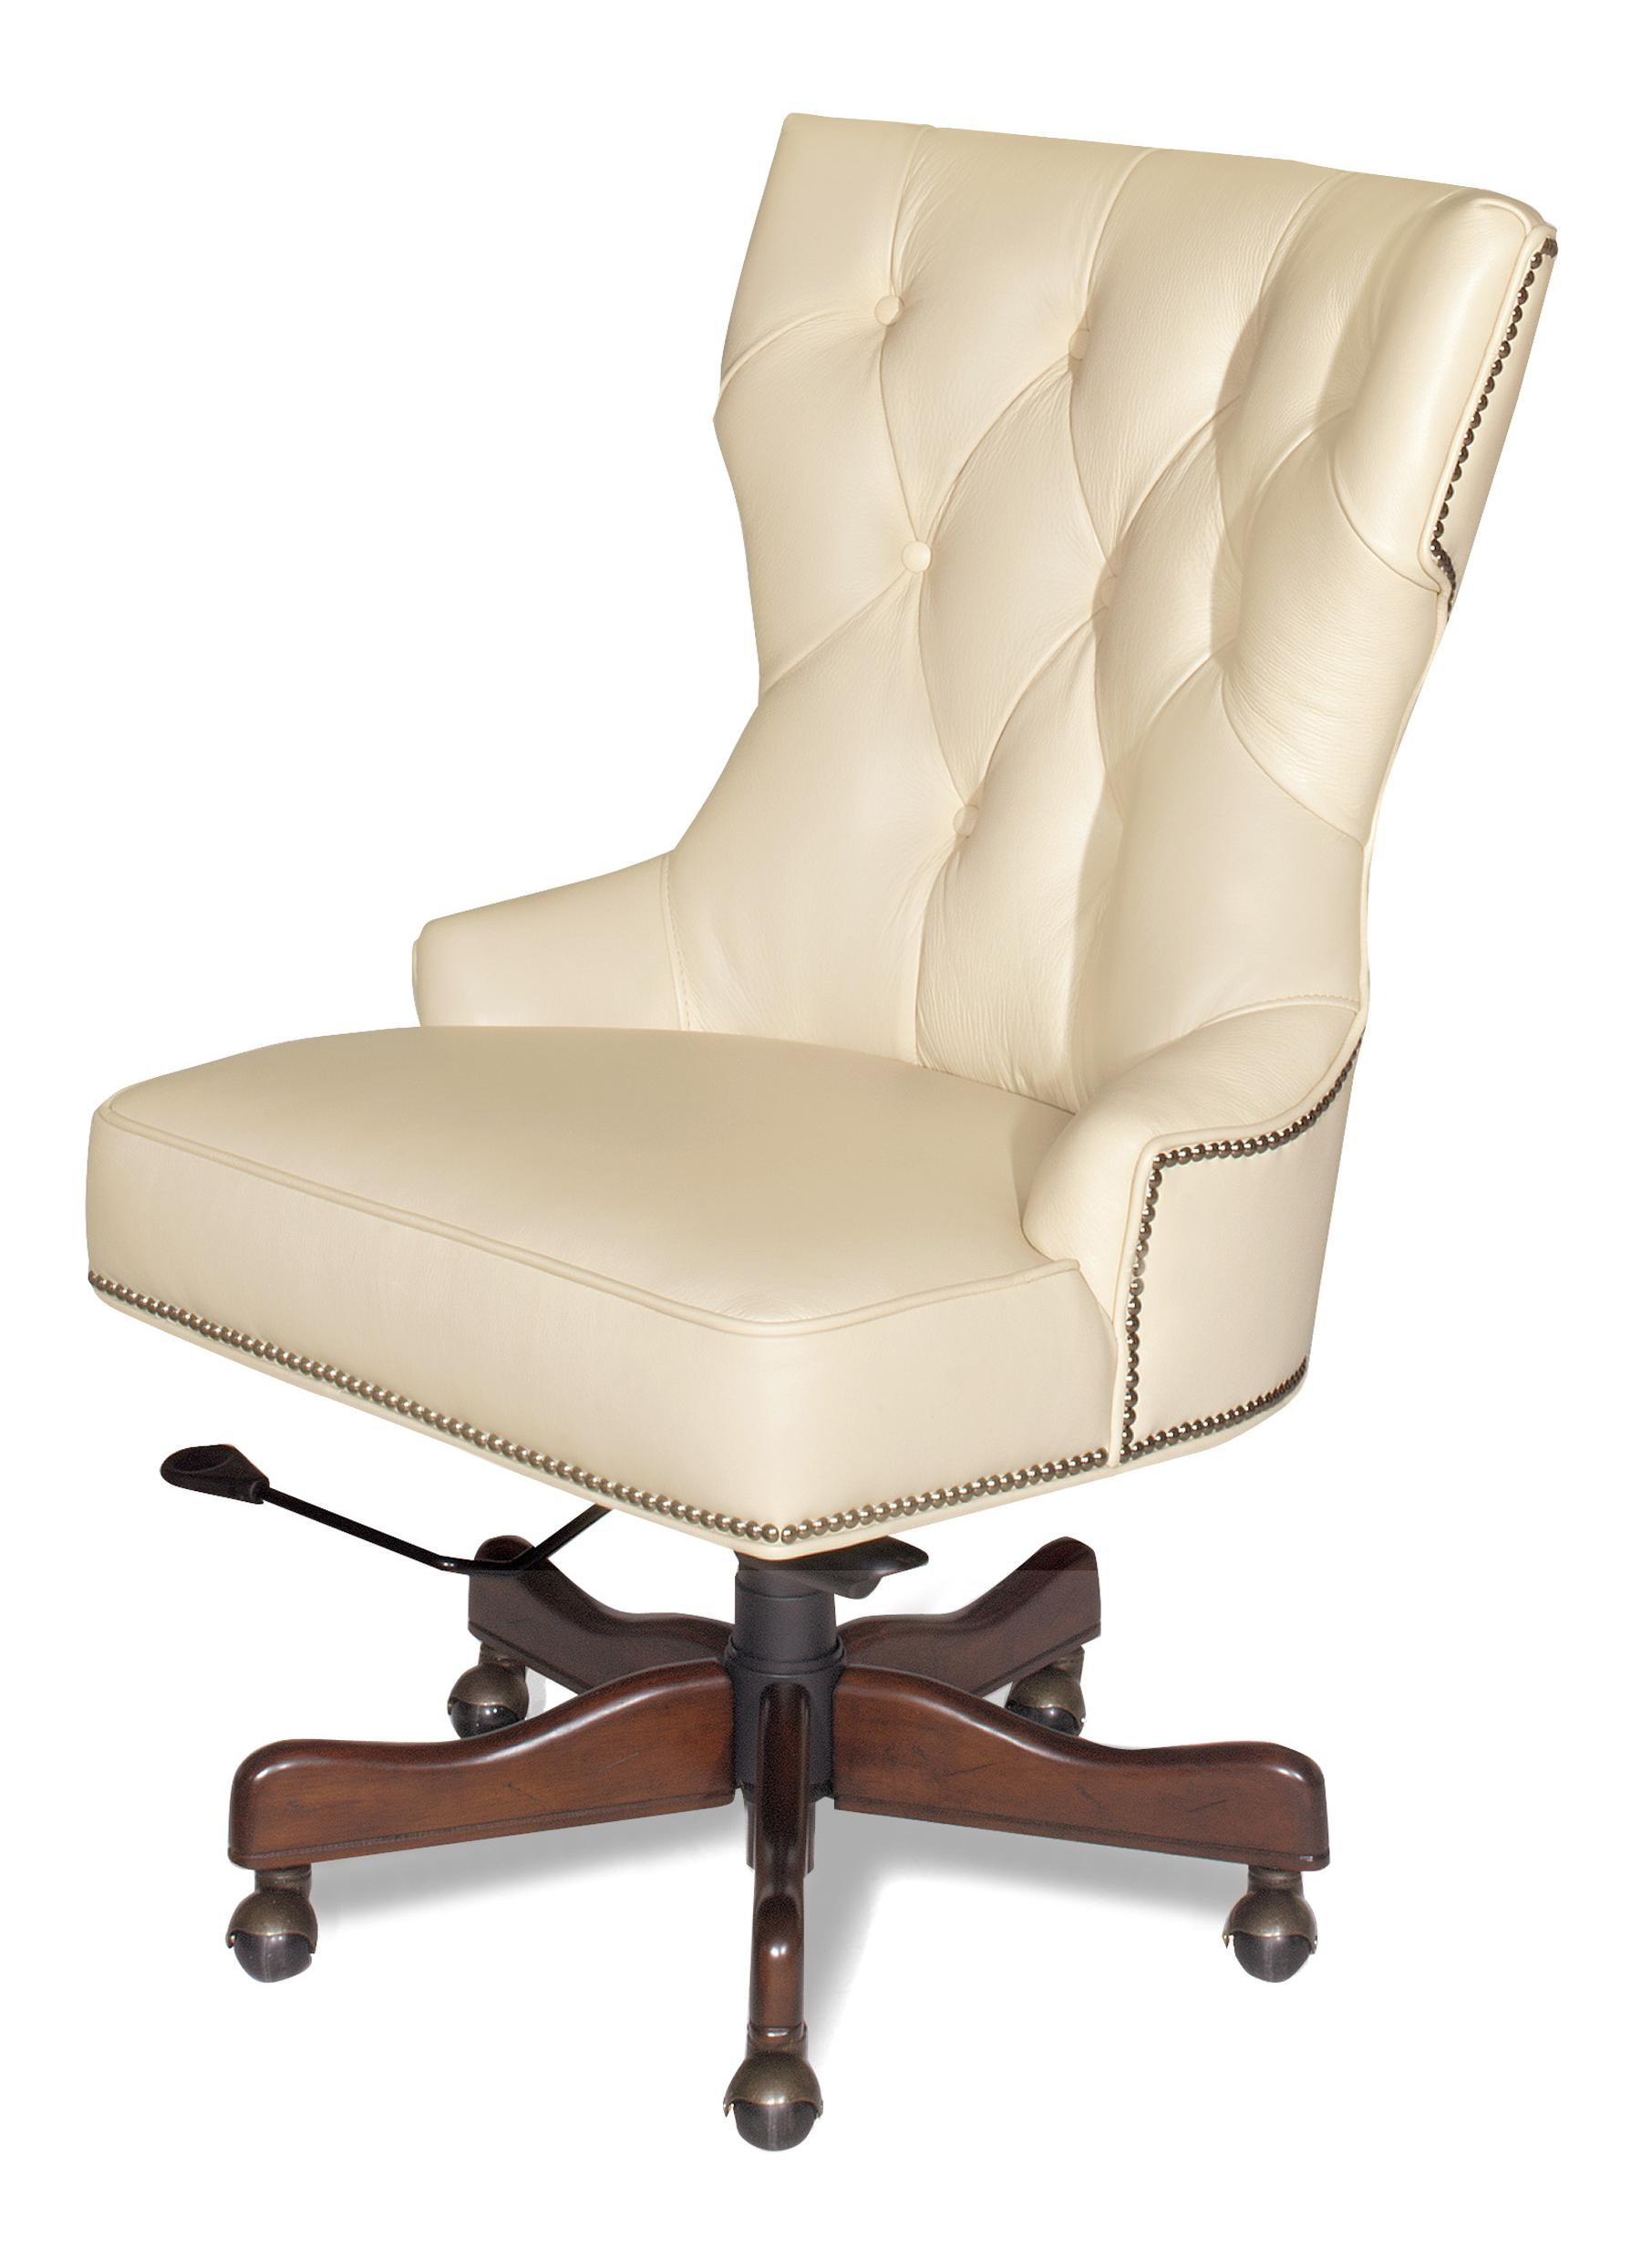 Hooker Furniture Executive Seating Executive Chair - Item Number: EC379-081